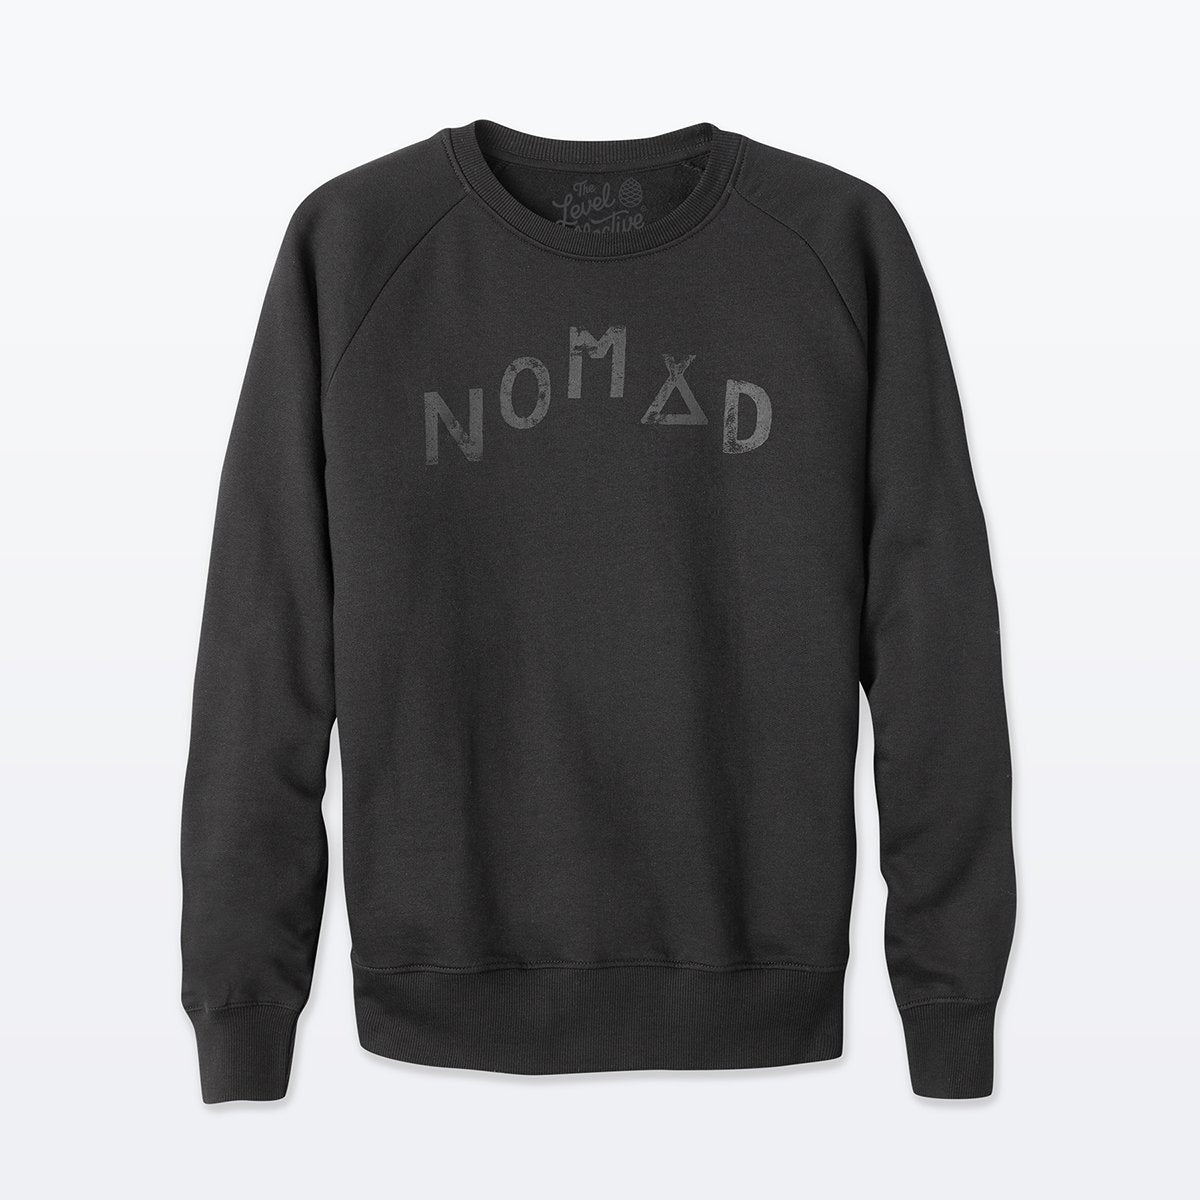 The Level Collective | Nomad Sweatshirt | Cotton Jumper | Logo Sweater | Stargazer